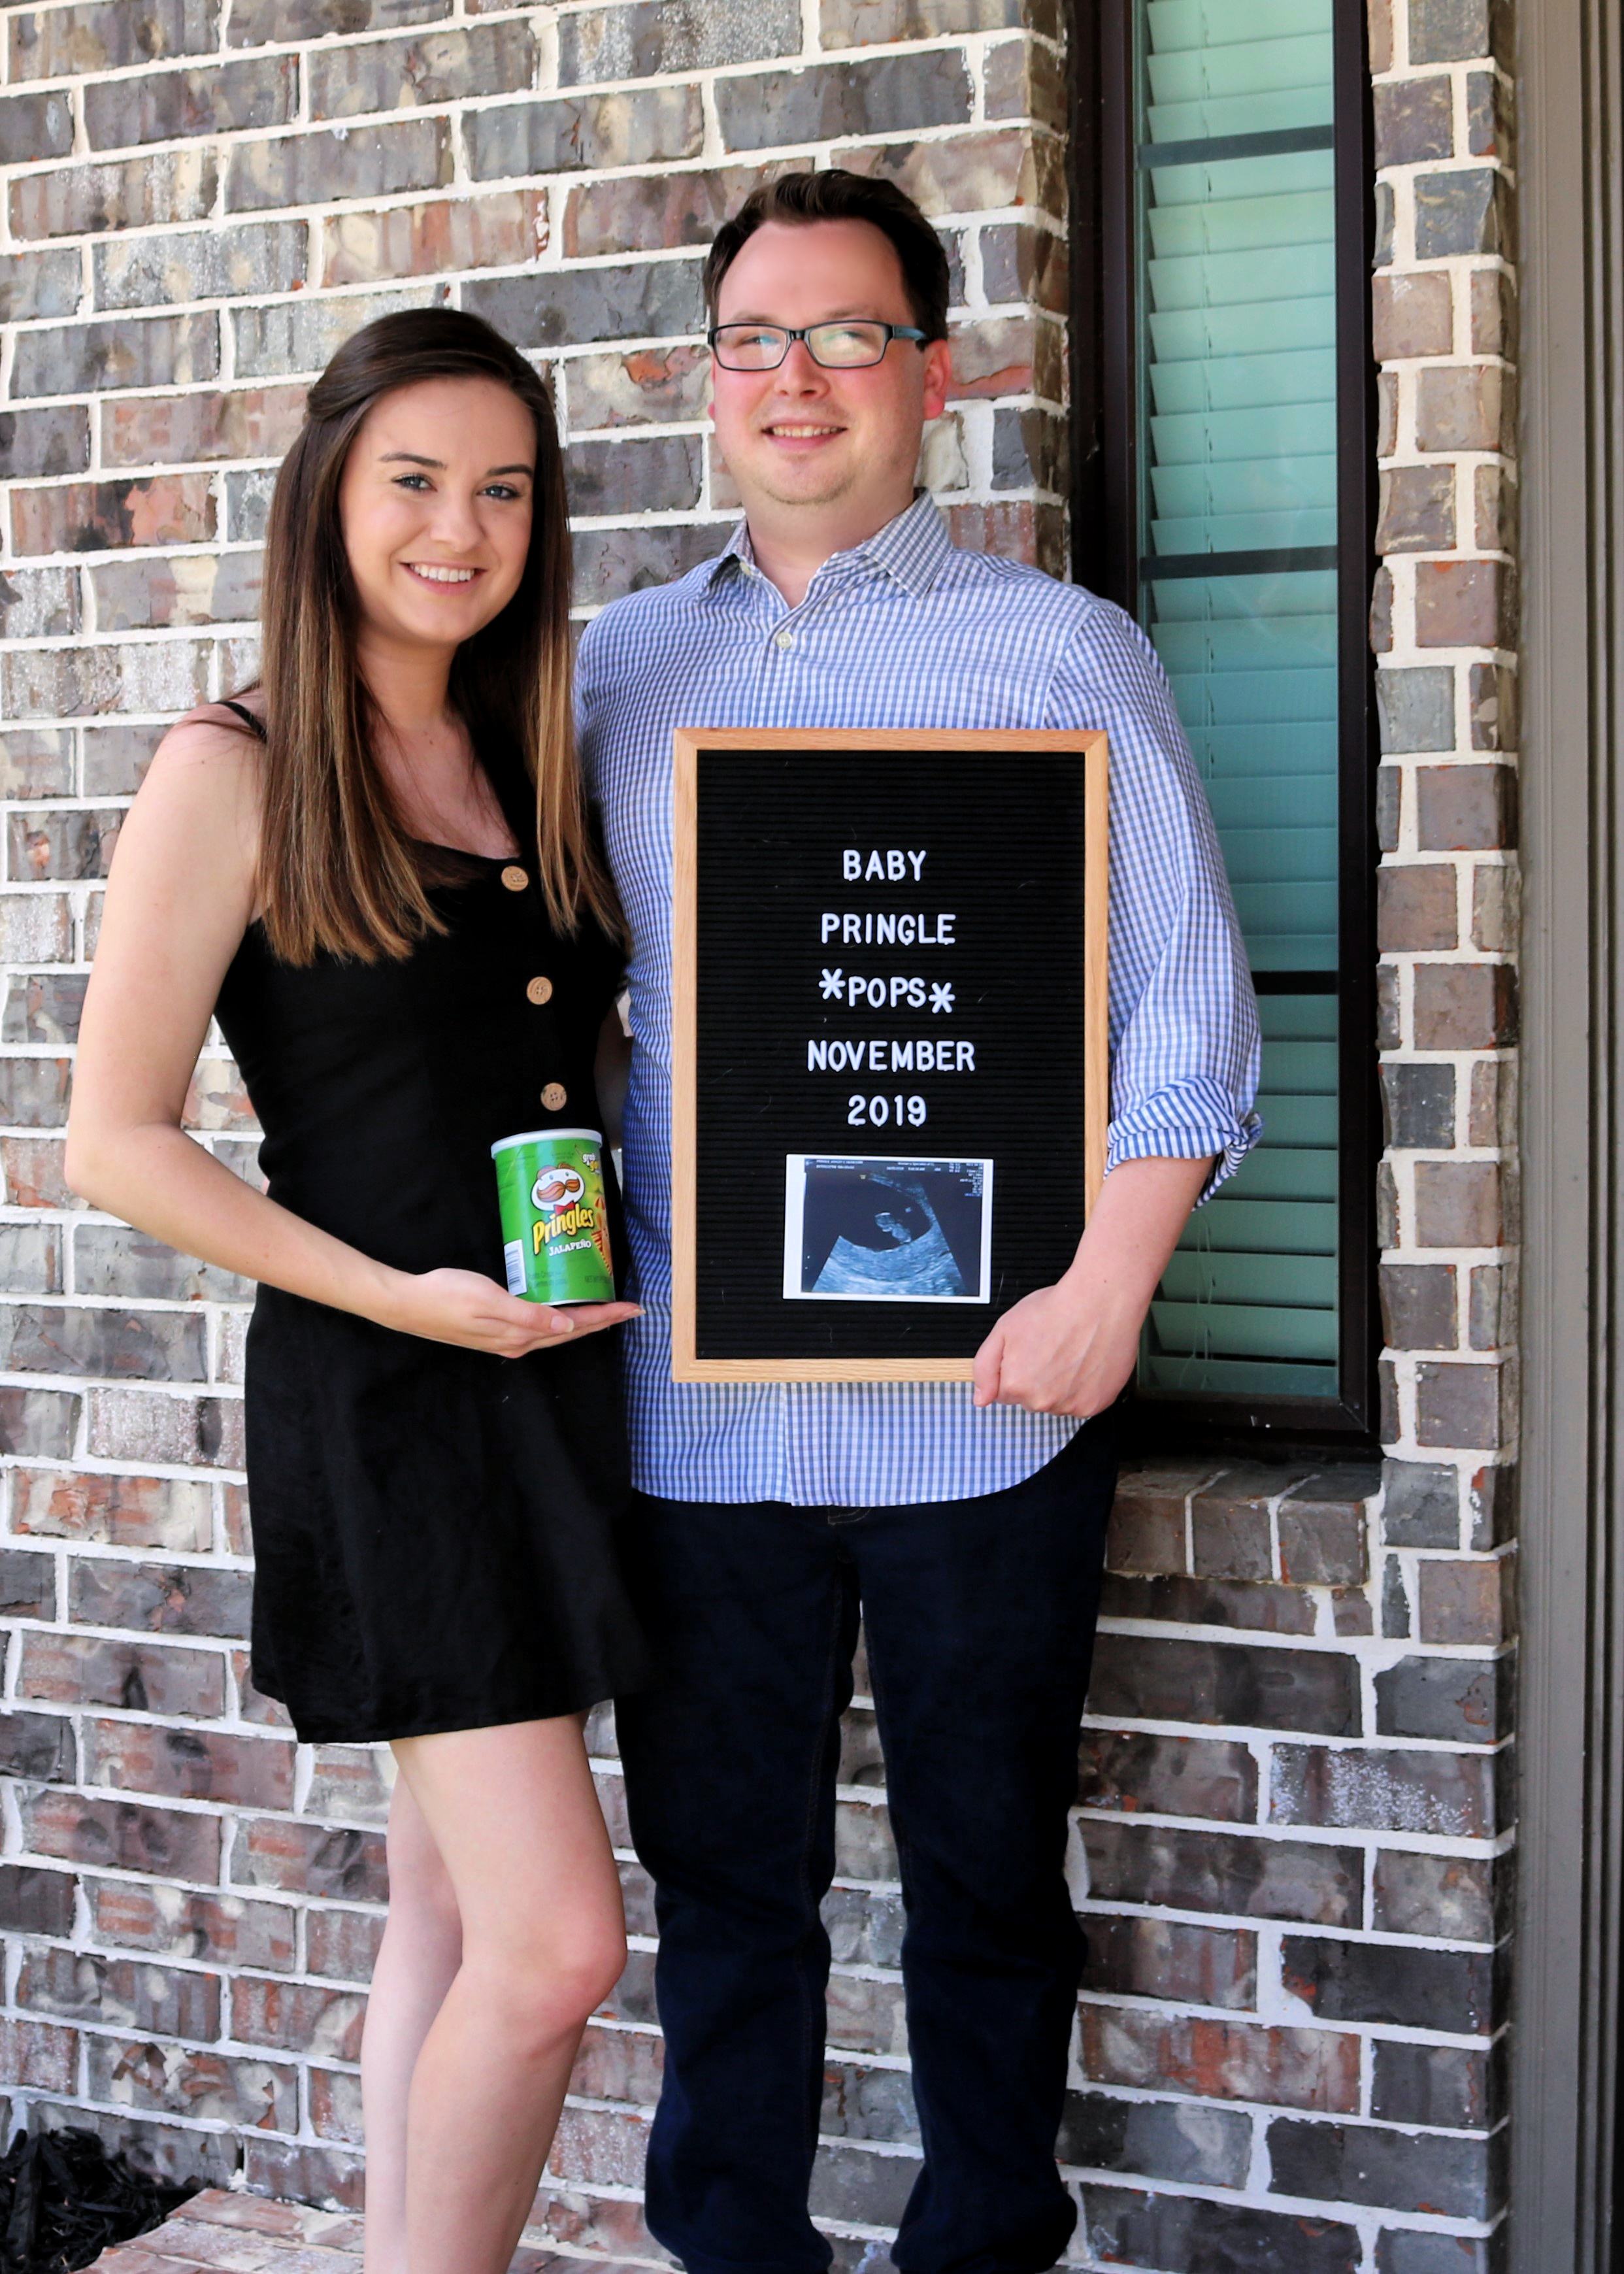 Baby Pringle Pregnancy Announcement